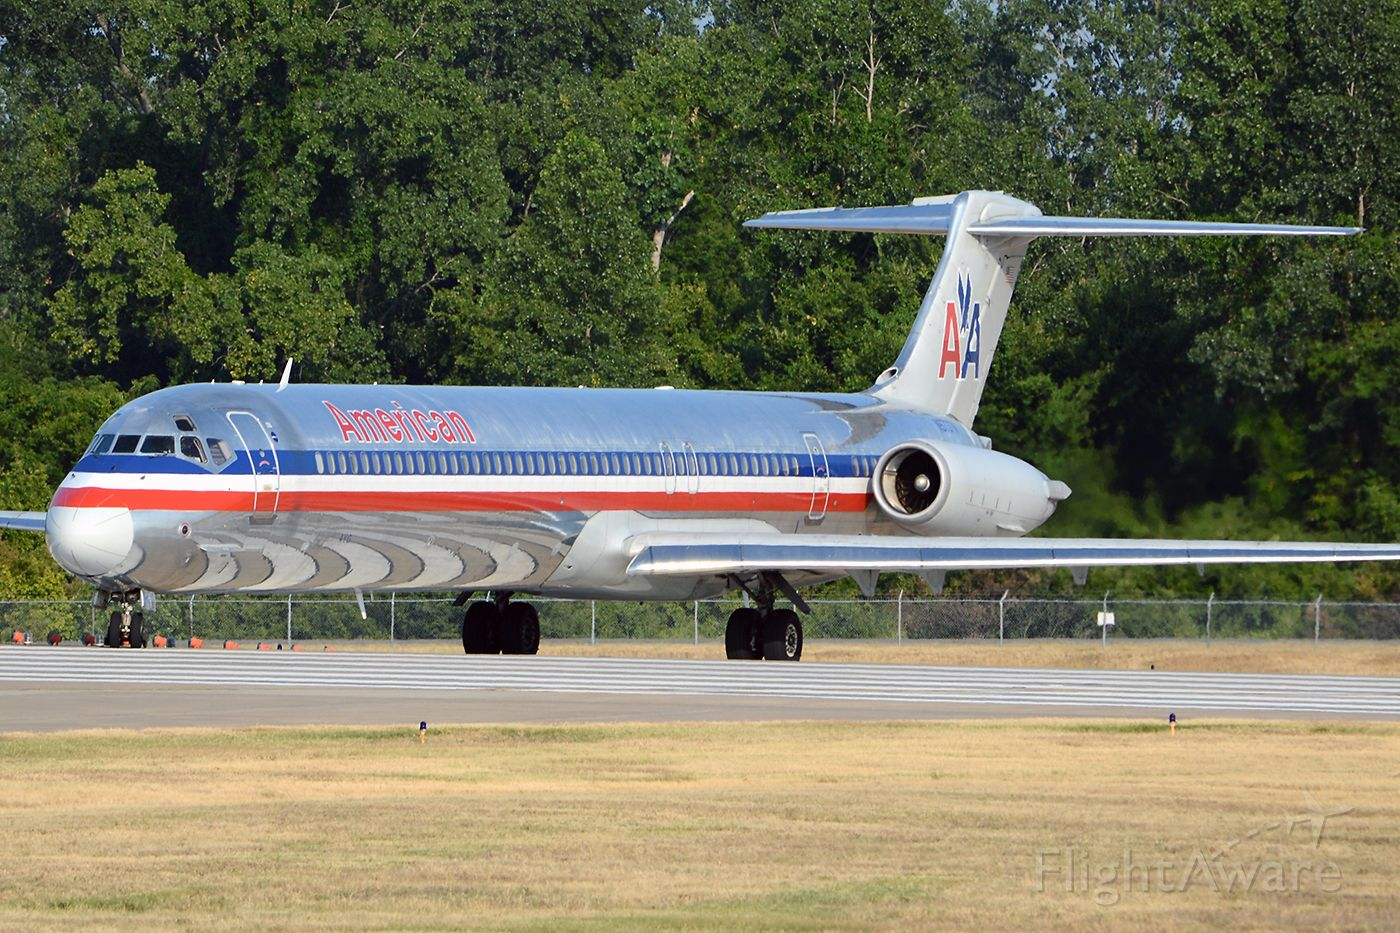 McDonnell Douglas MD-83 (N973TW) - July 2012, departing for DFW.